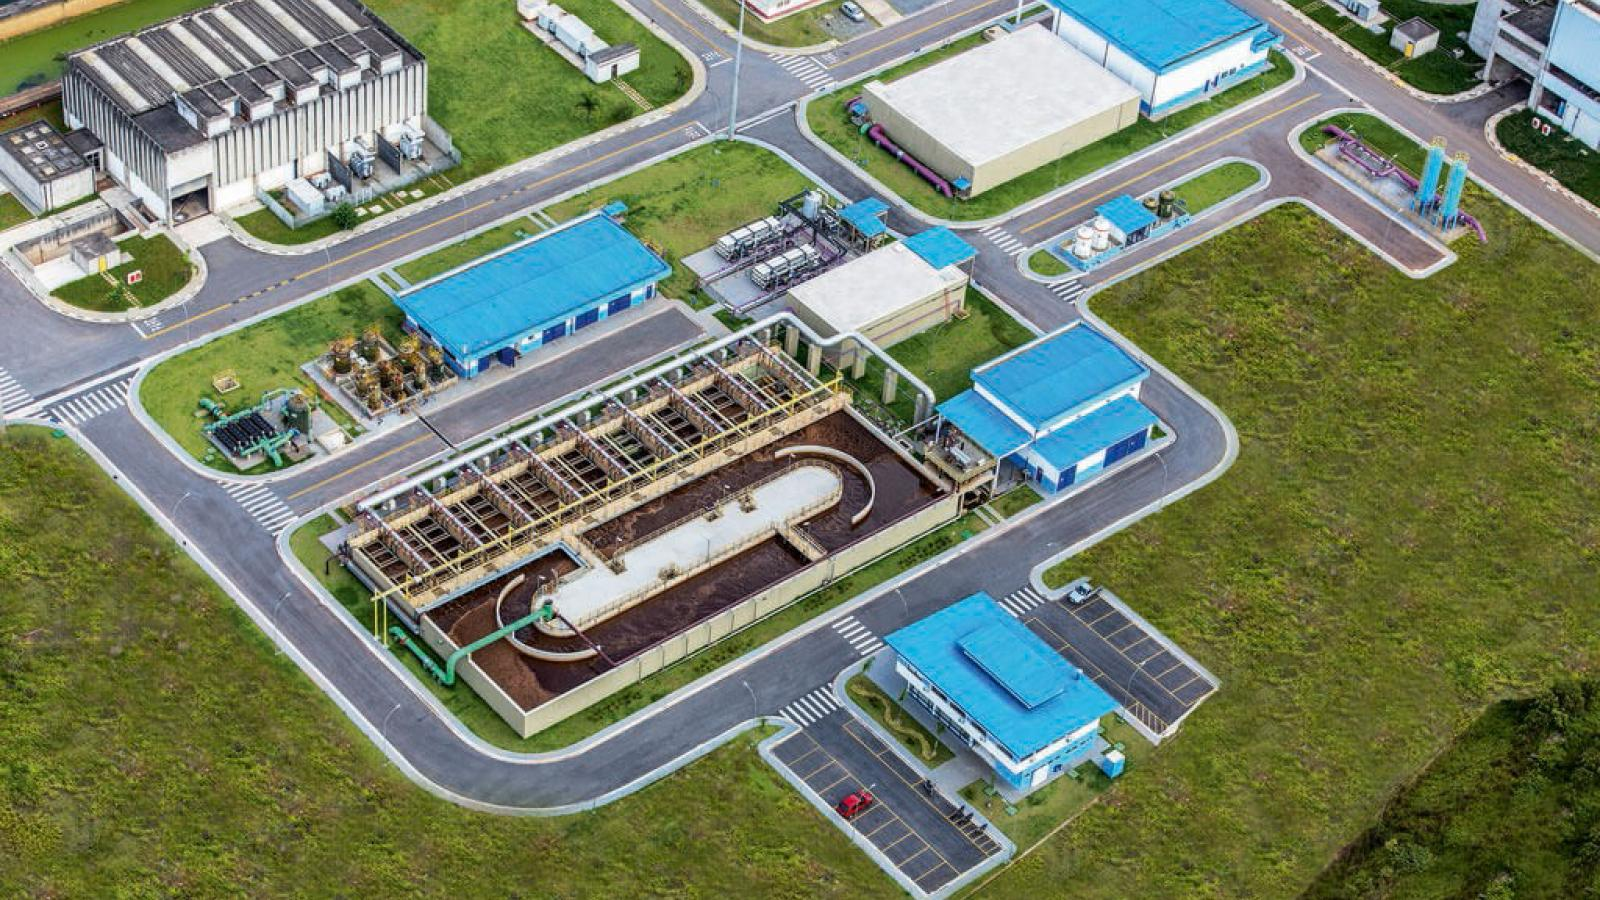 Overhead view of water treatment plant